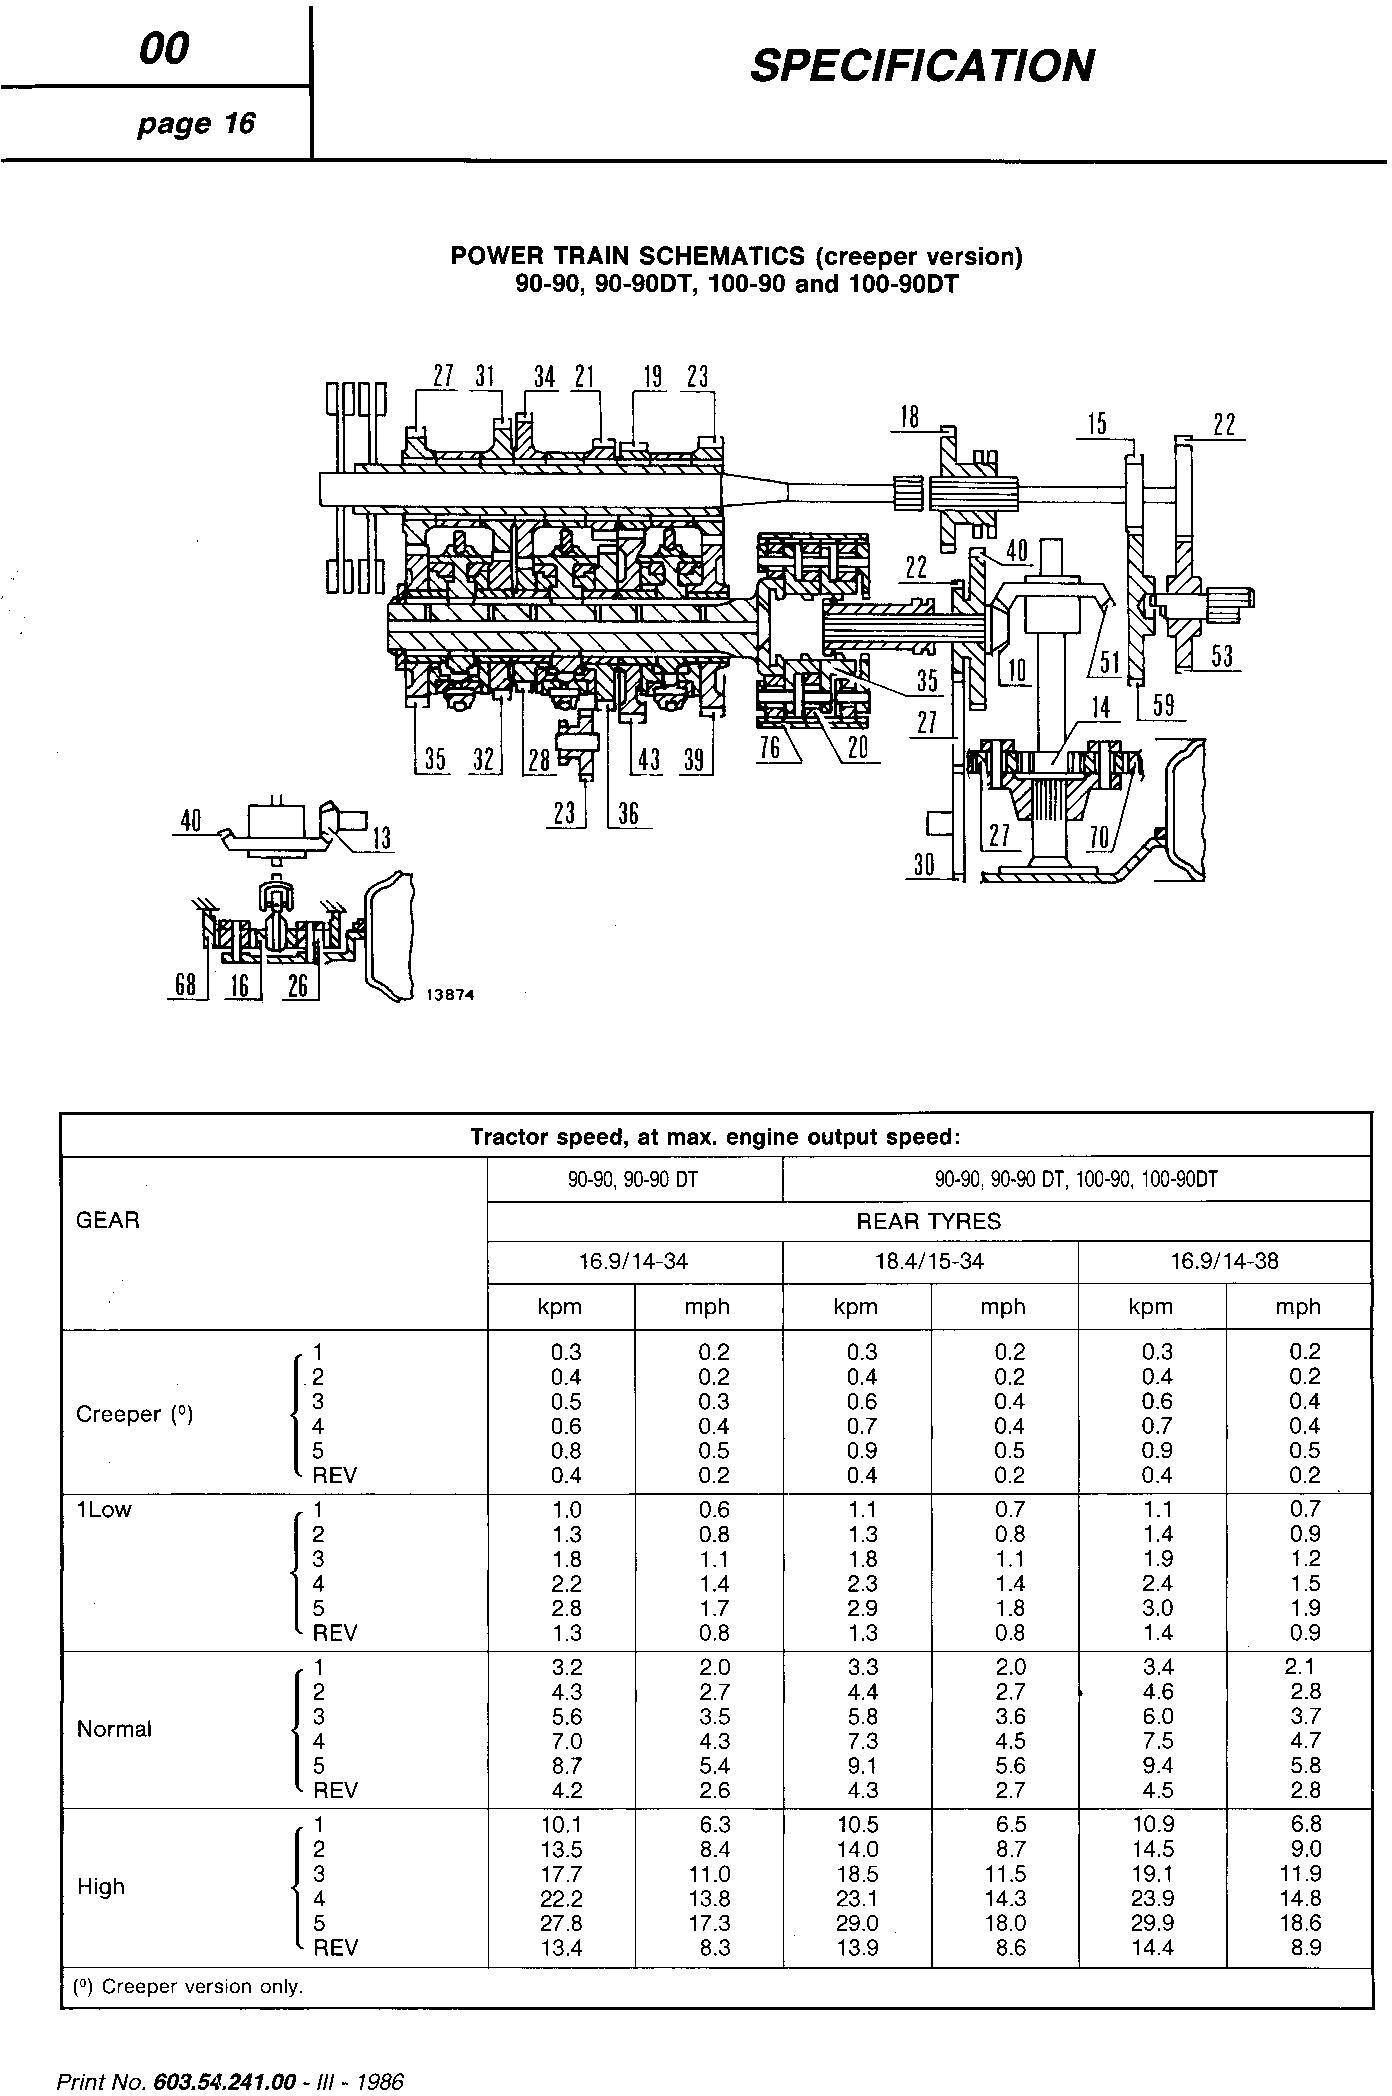 Fiat 55-90, 60-90, 70-90, 80-90, 90-90, 100- 90 Tractor Service Manual (6035424100) - 2